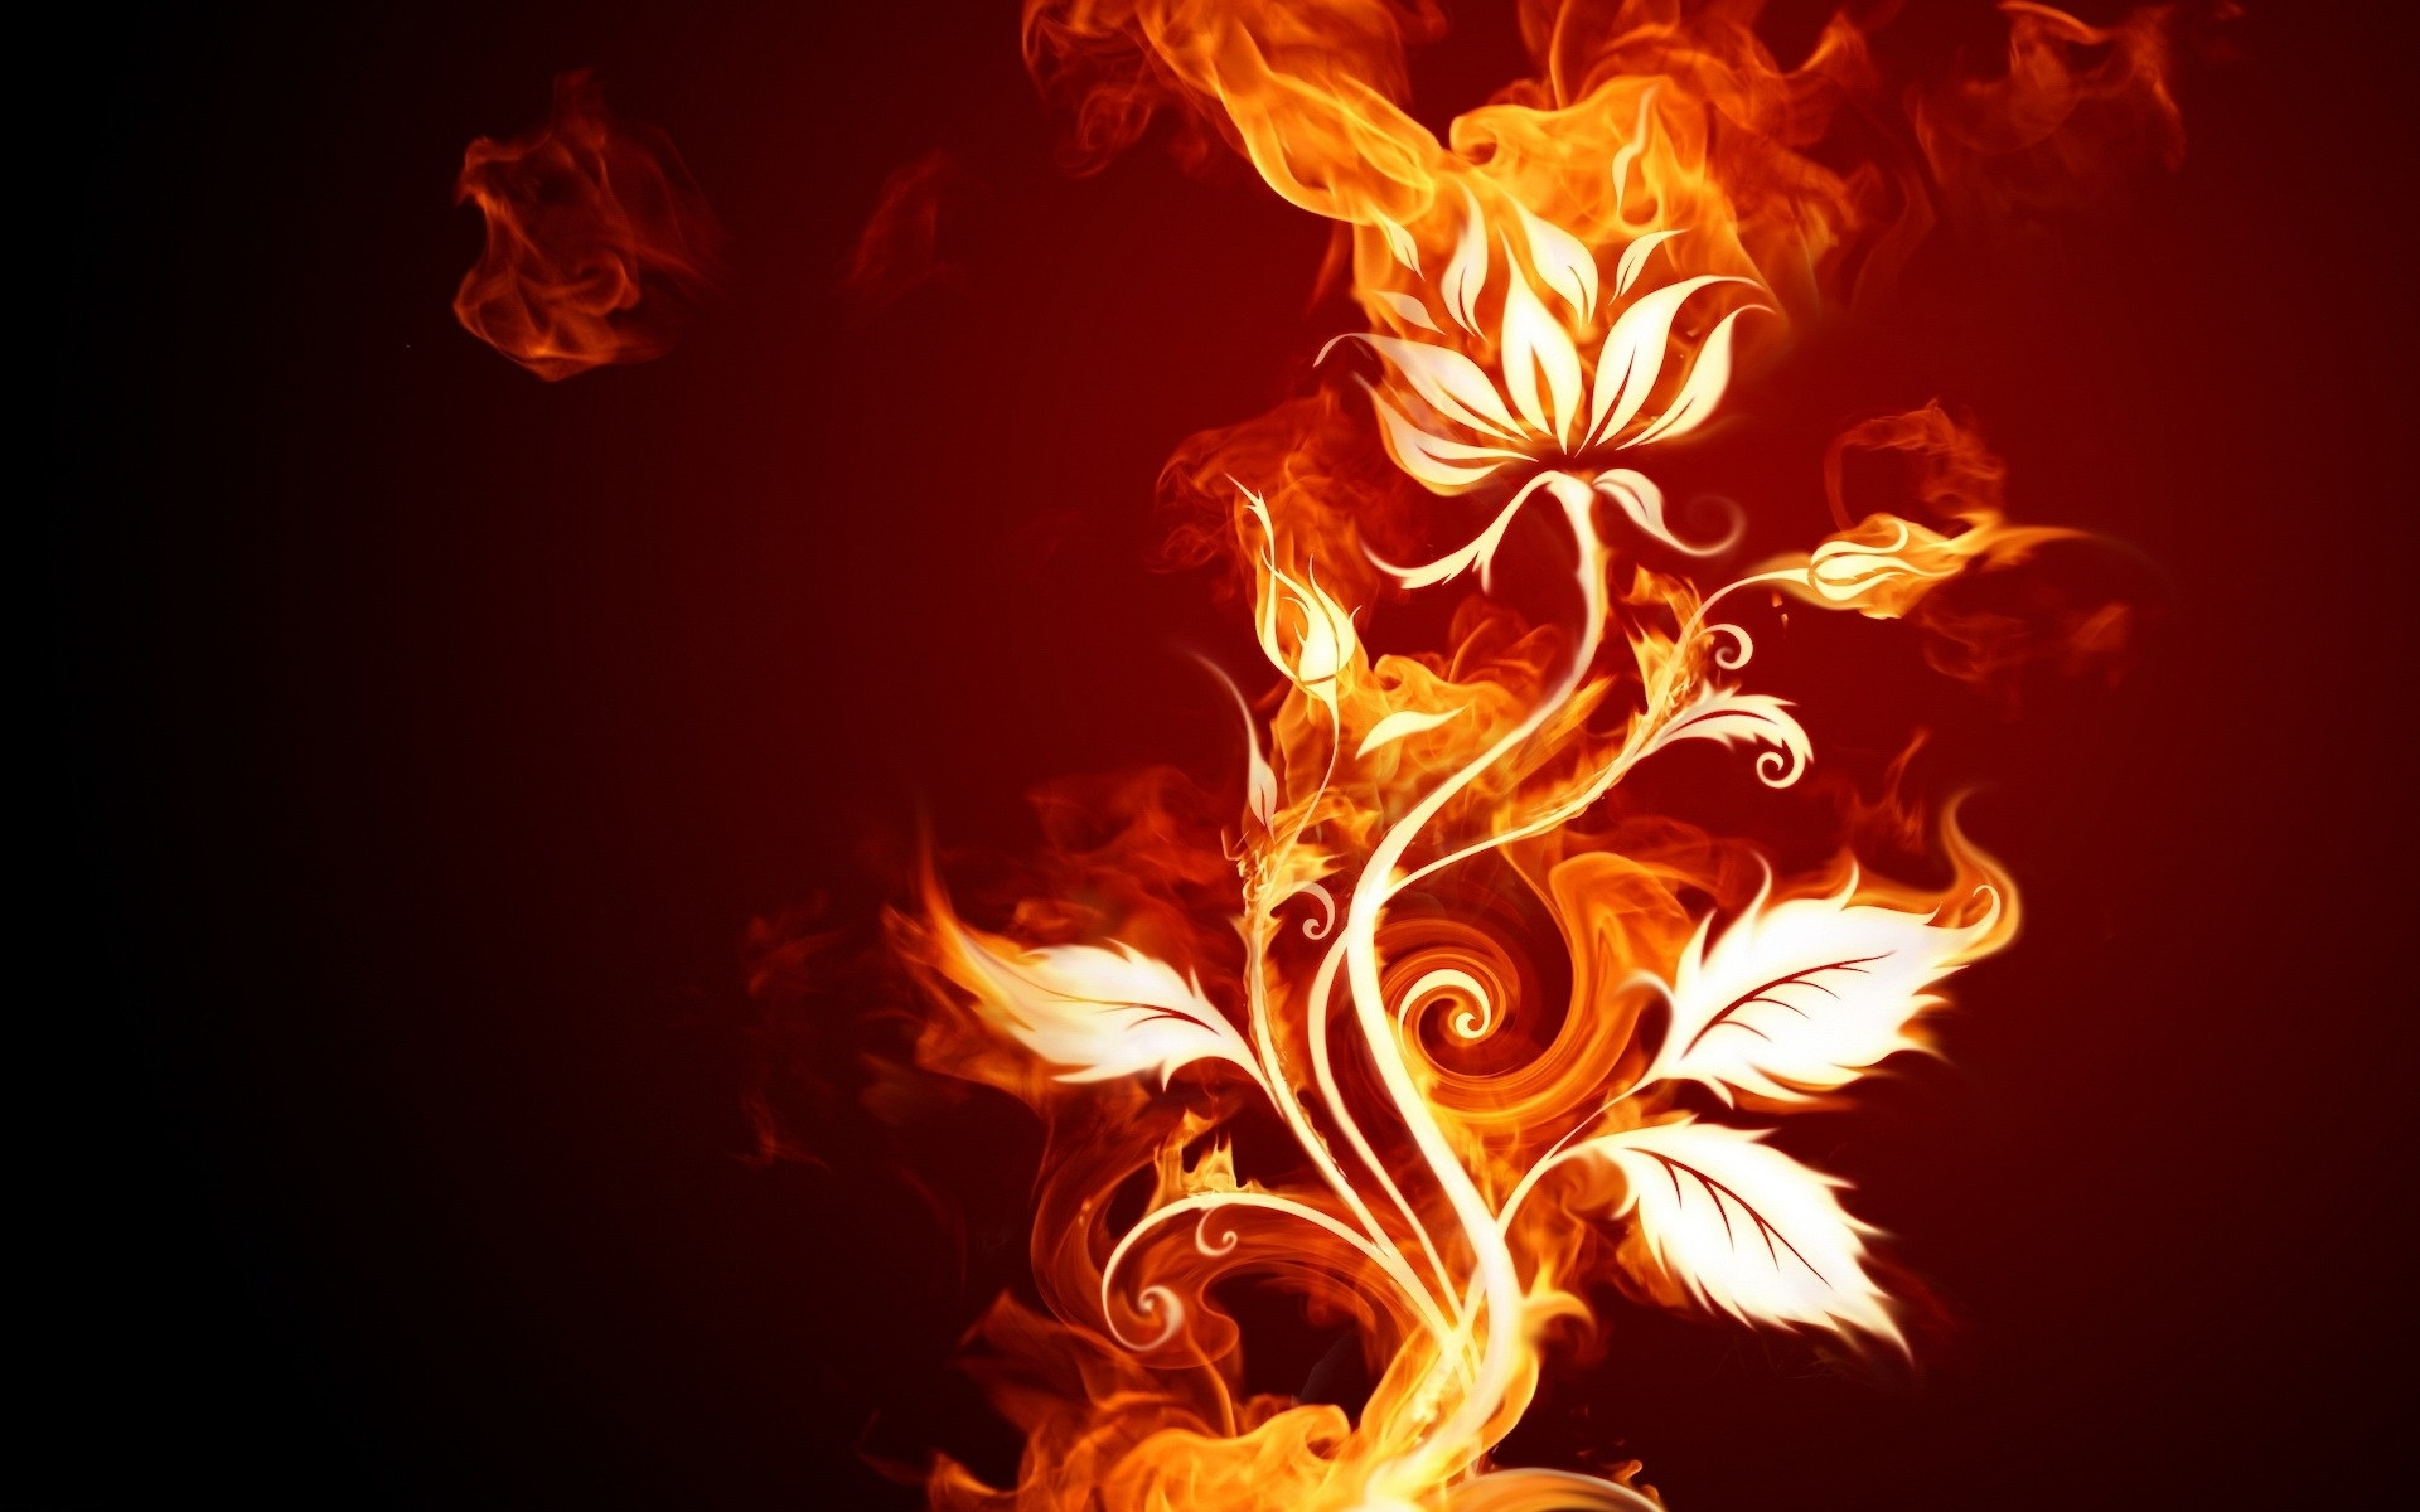 Fire Rose Wallpaper